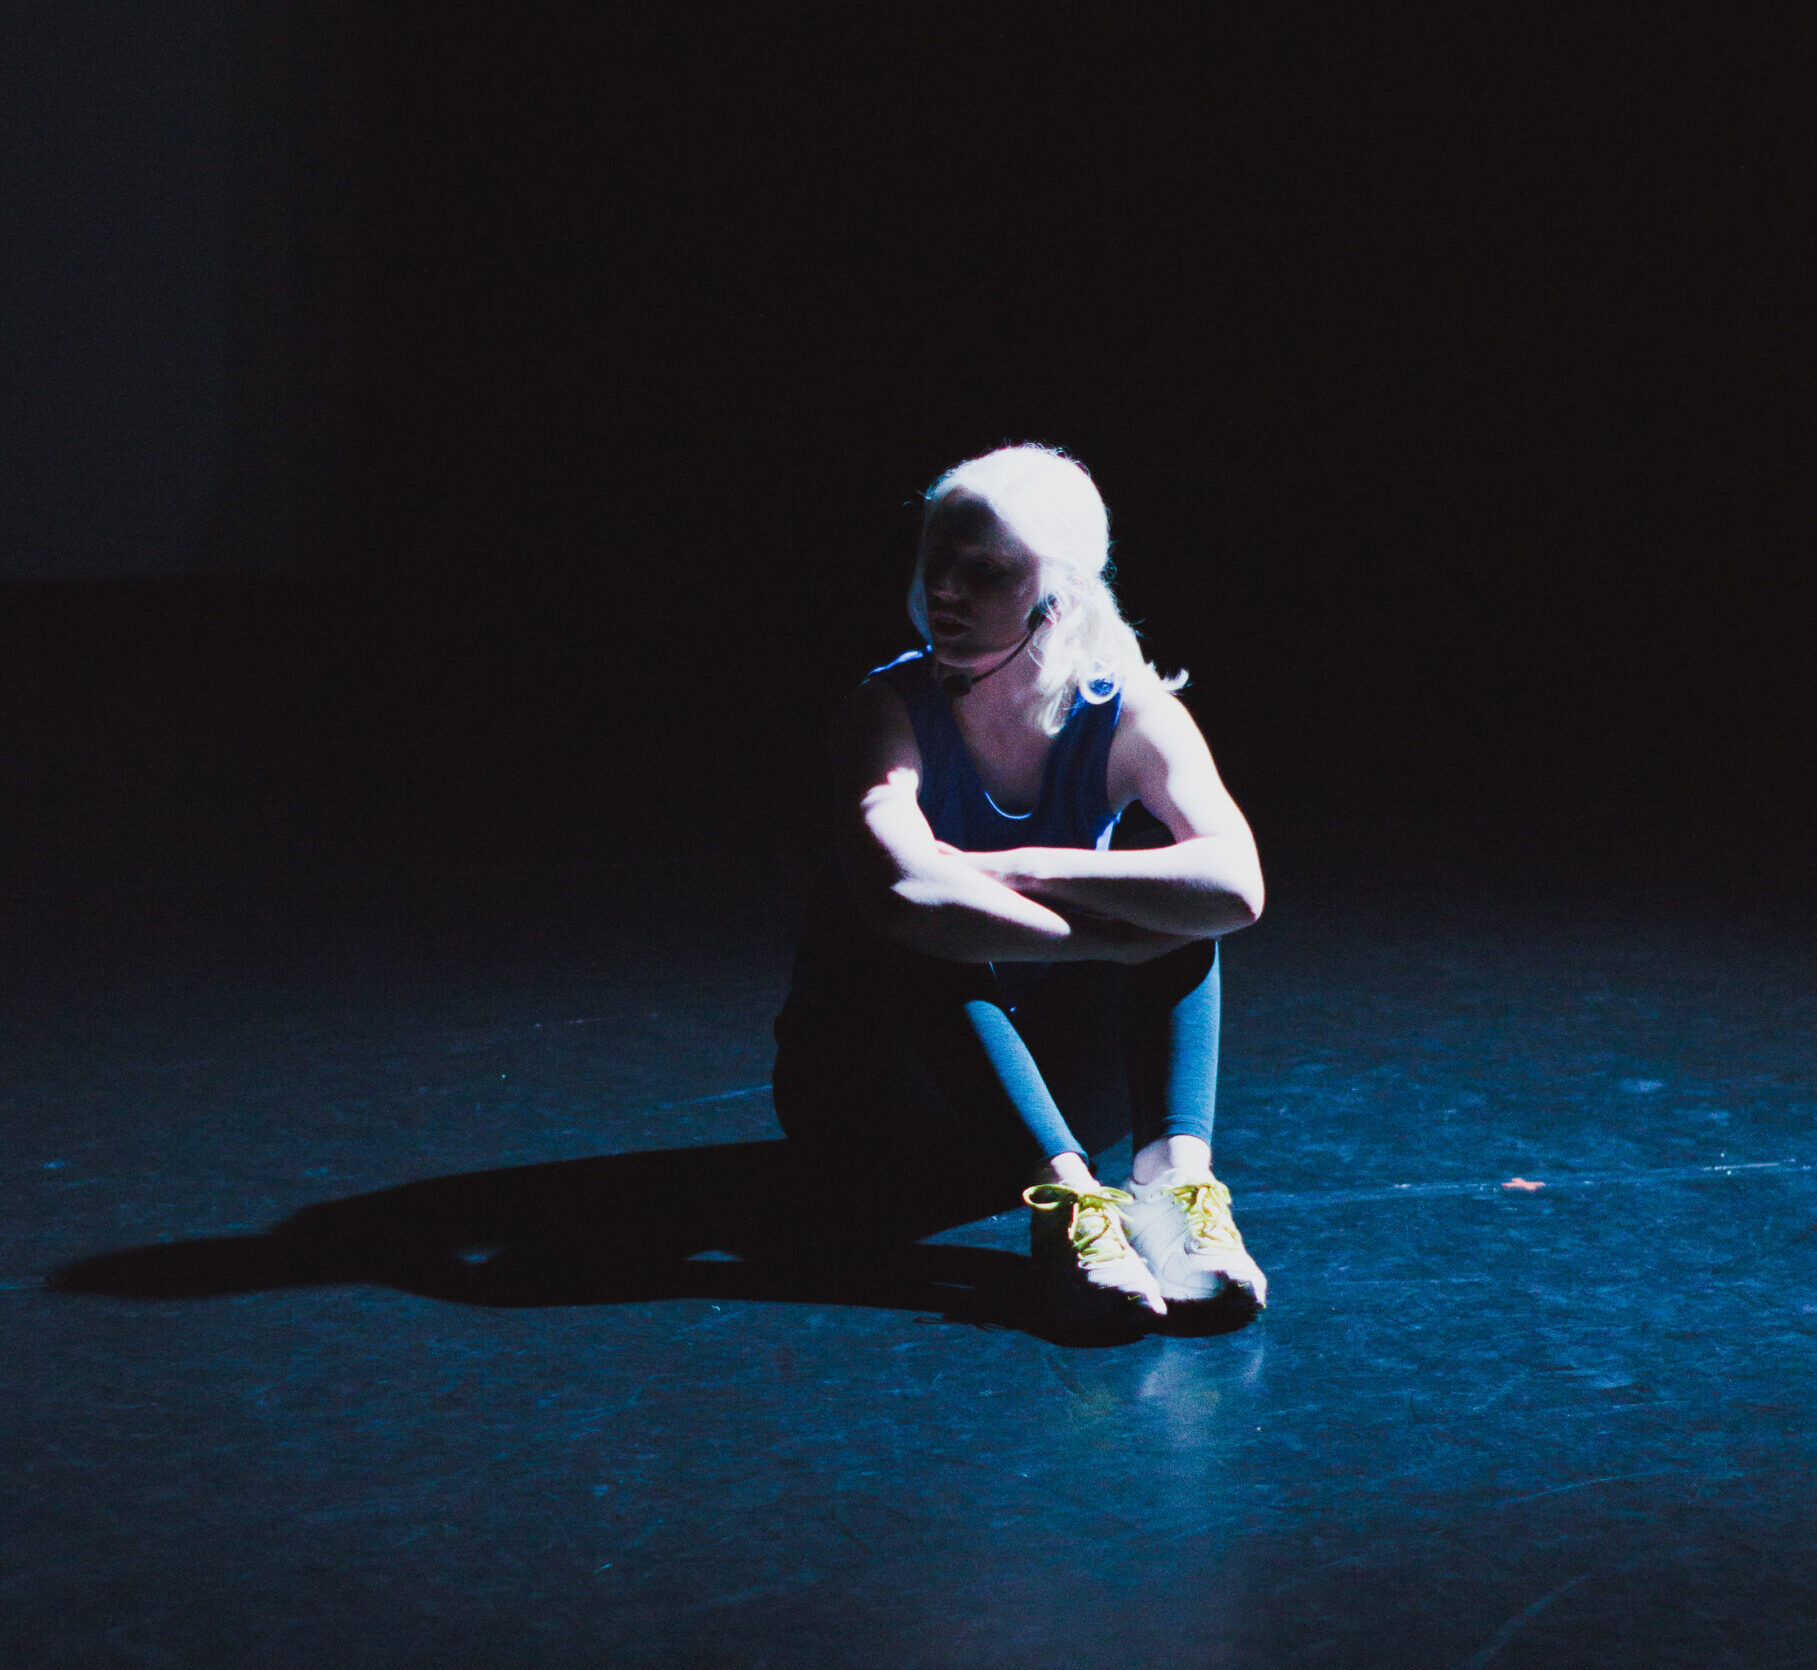 Ellen sits on the floor of the stage, it's dark and she is lit by a spotlight